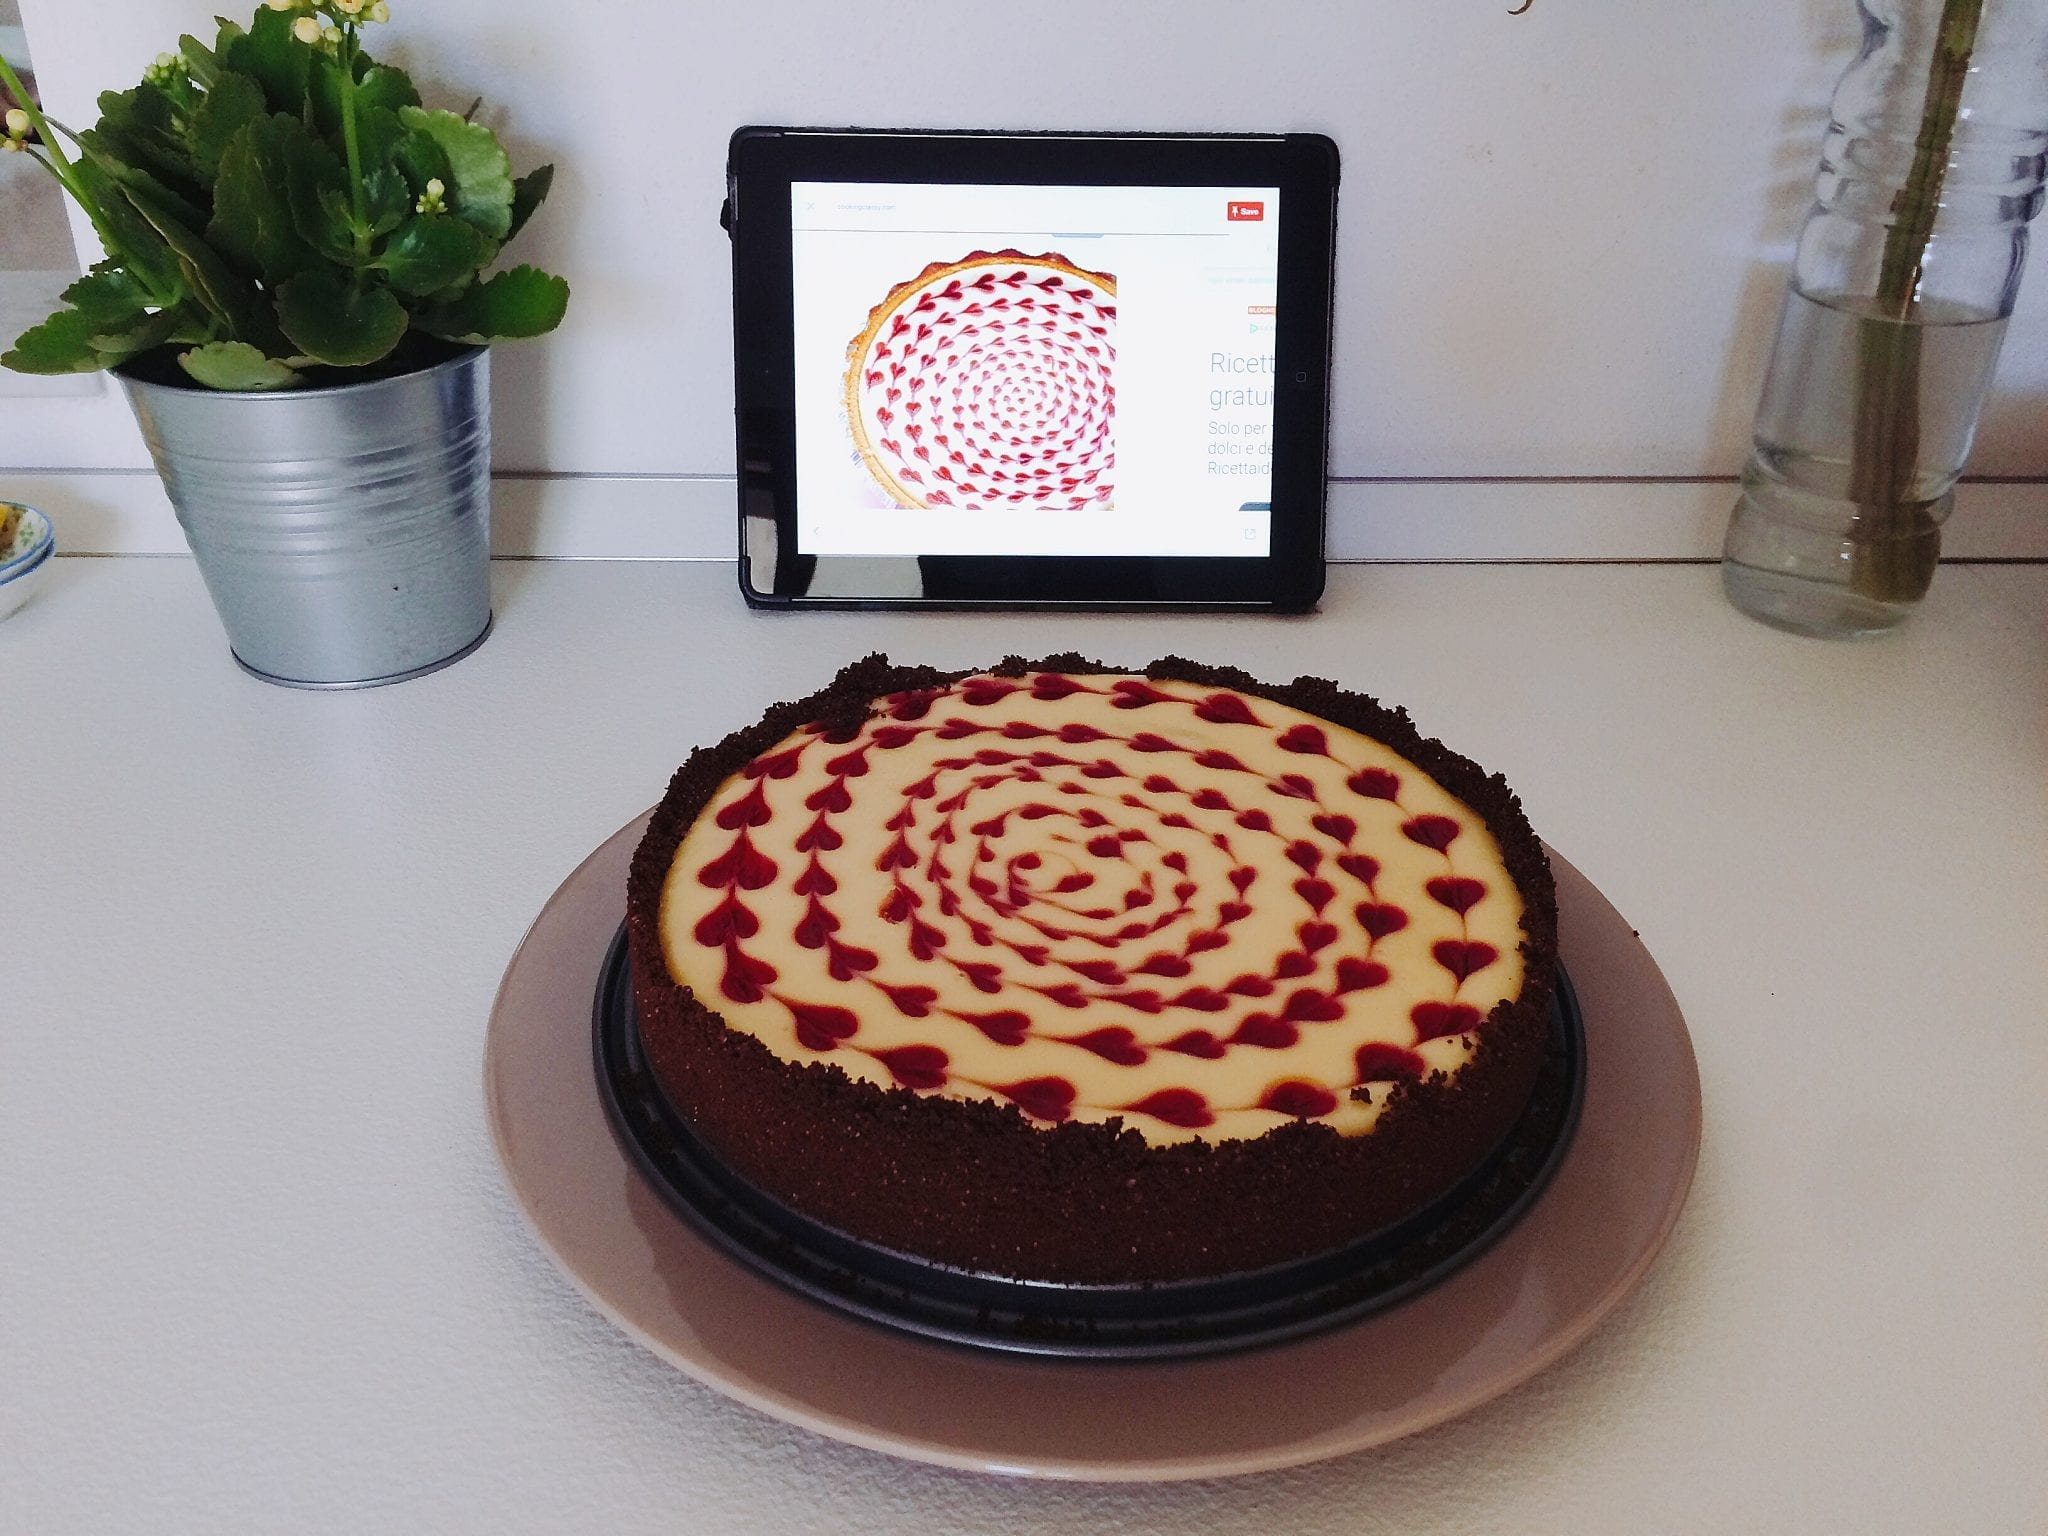 Cheesecake alle fragole - Le Plume - Bake challenge